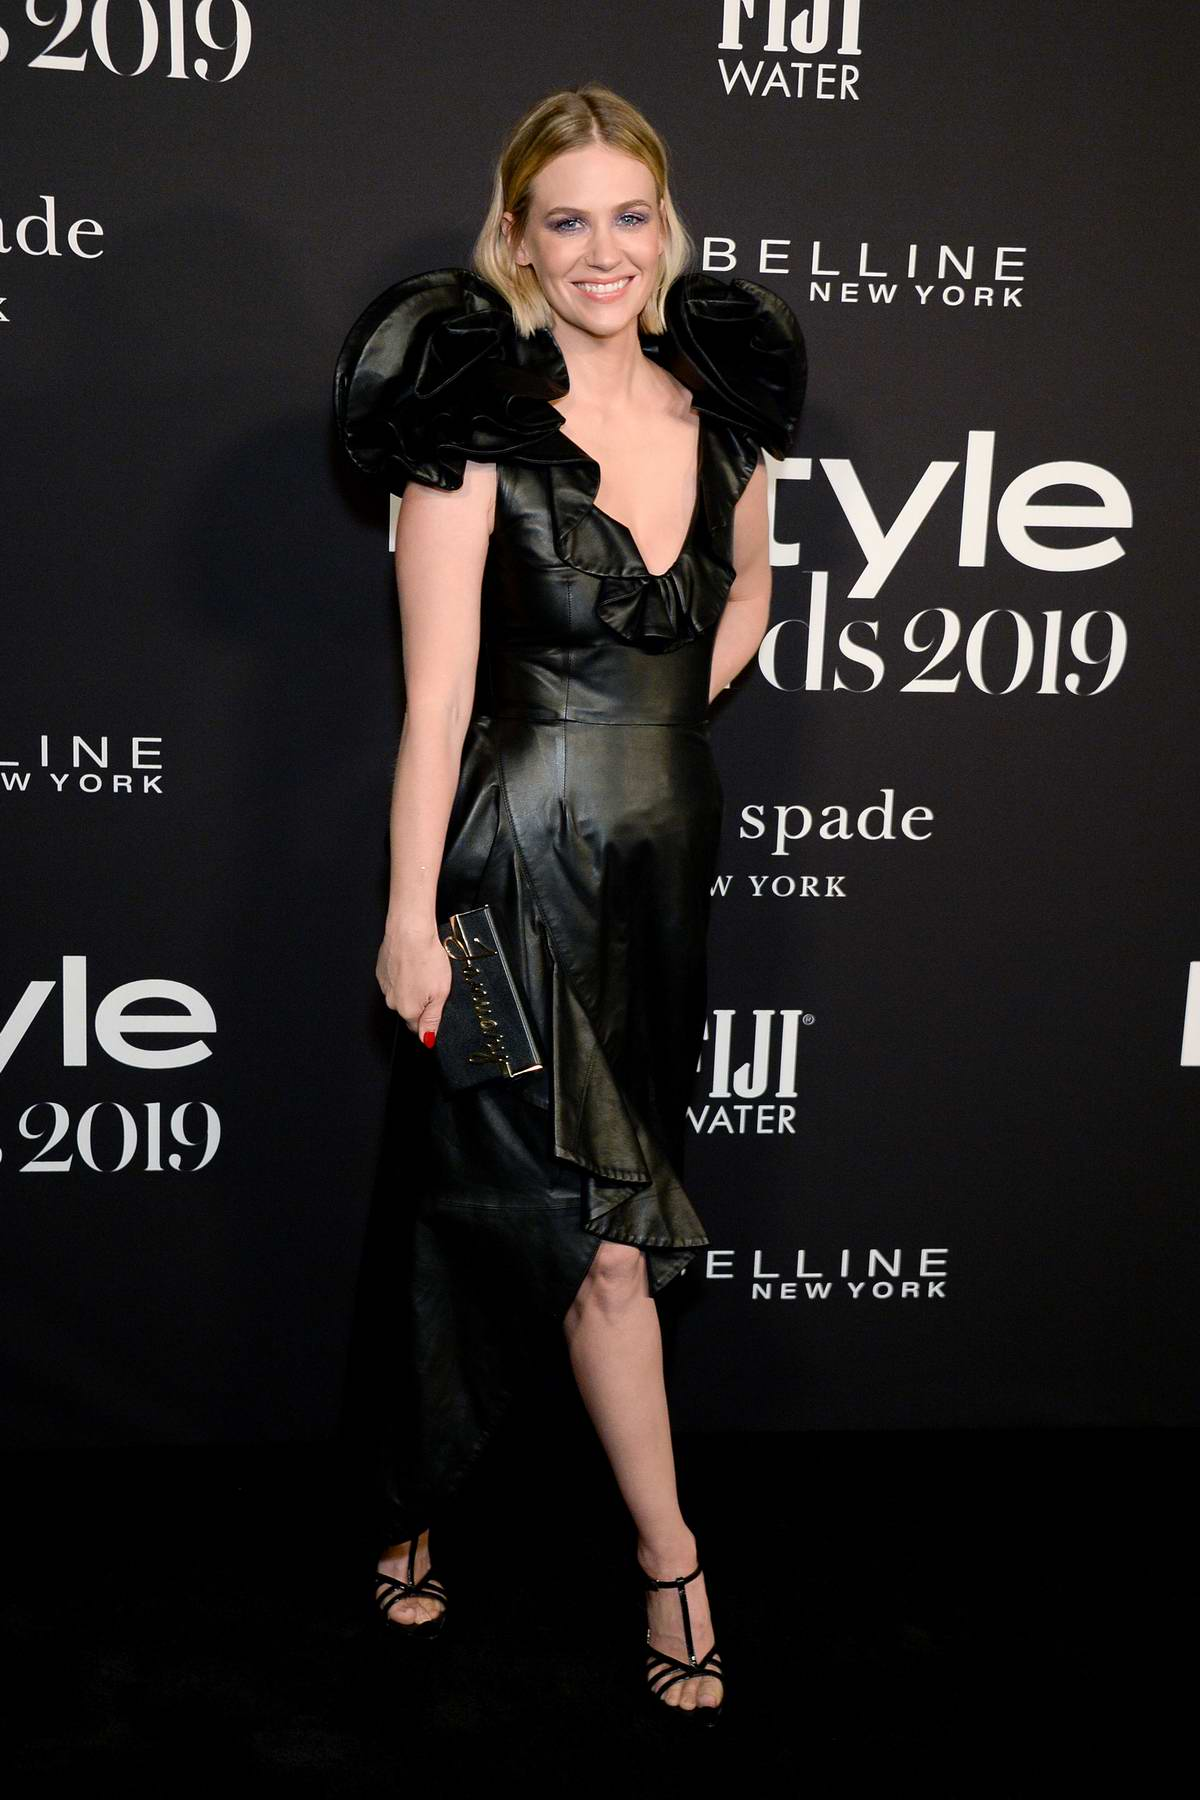 January Jones attends the 5th Annual InStyle Awards in Los Angeles